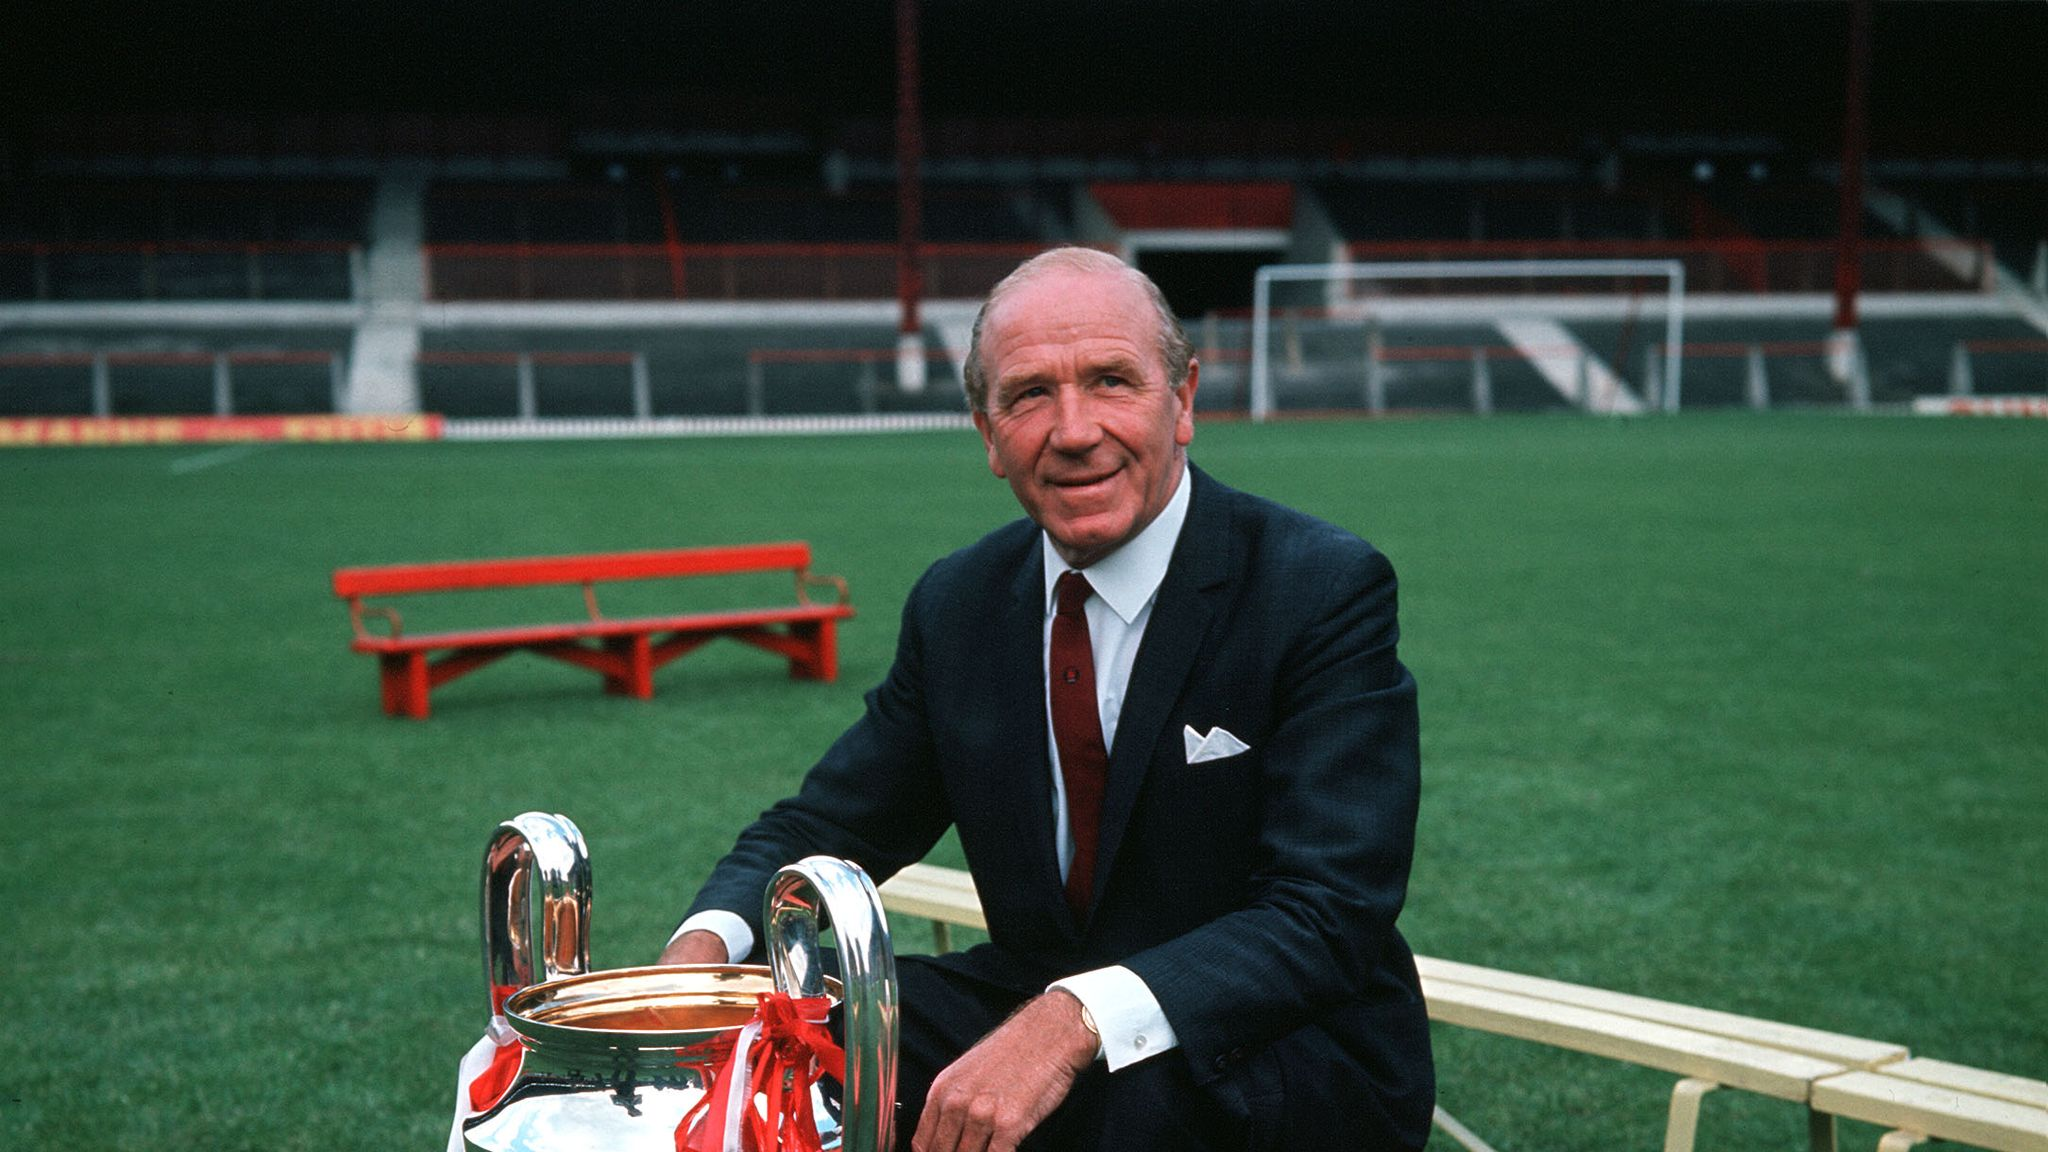 Matt Busby: Pioneering manager who shaped Manchester United profiled in new film | Football News | Sky Sports